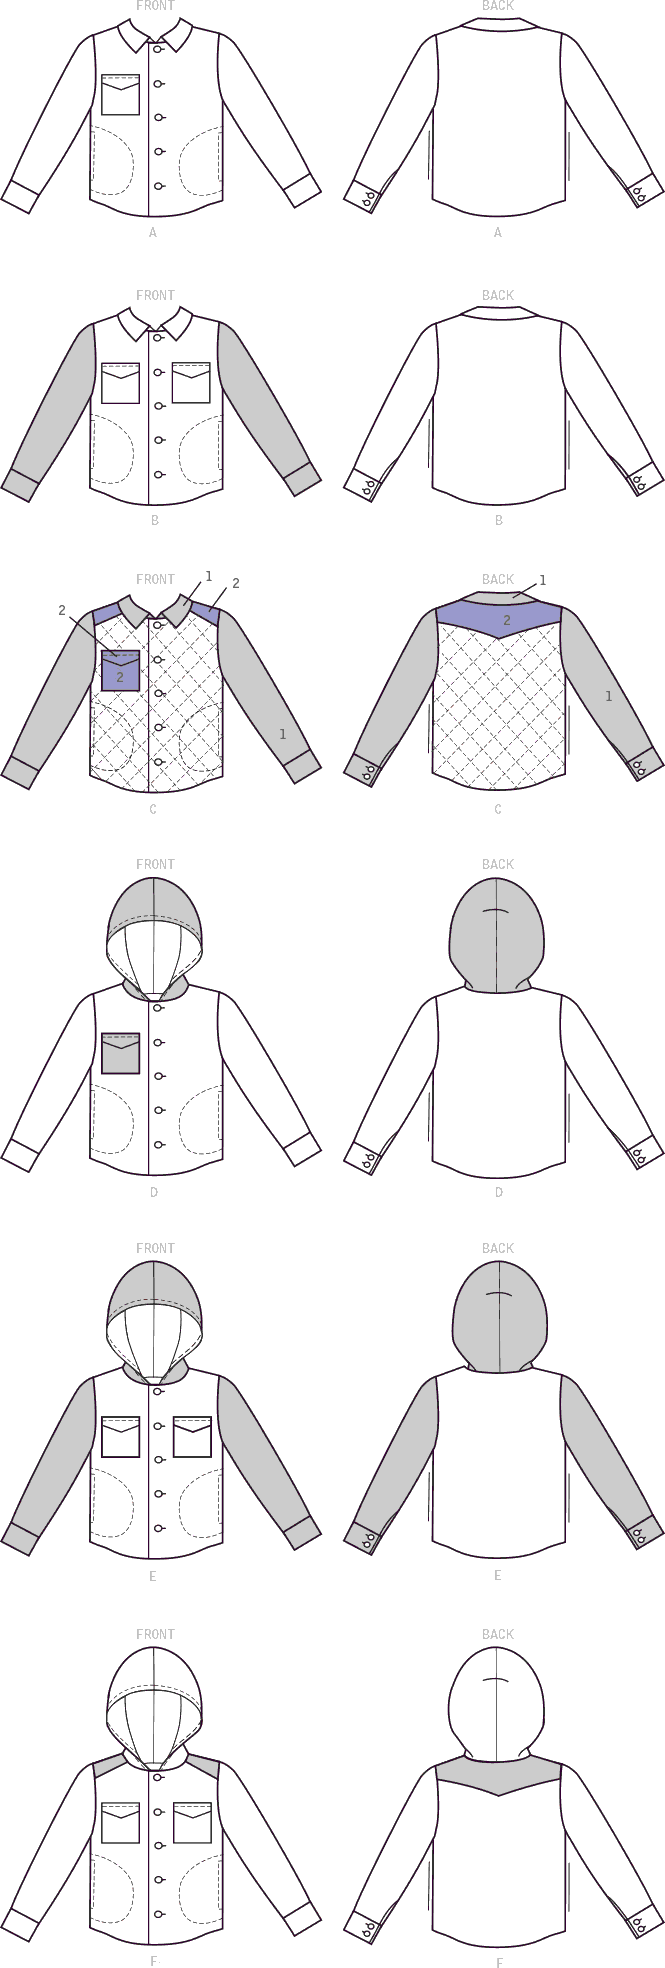 McCall's Pattern M7638 Mens and Boys Lined Button Front Jackets with Hood Options 7638 Line Art From Patternsandplains.com